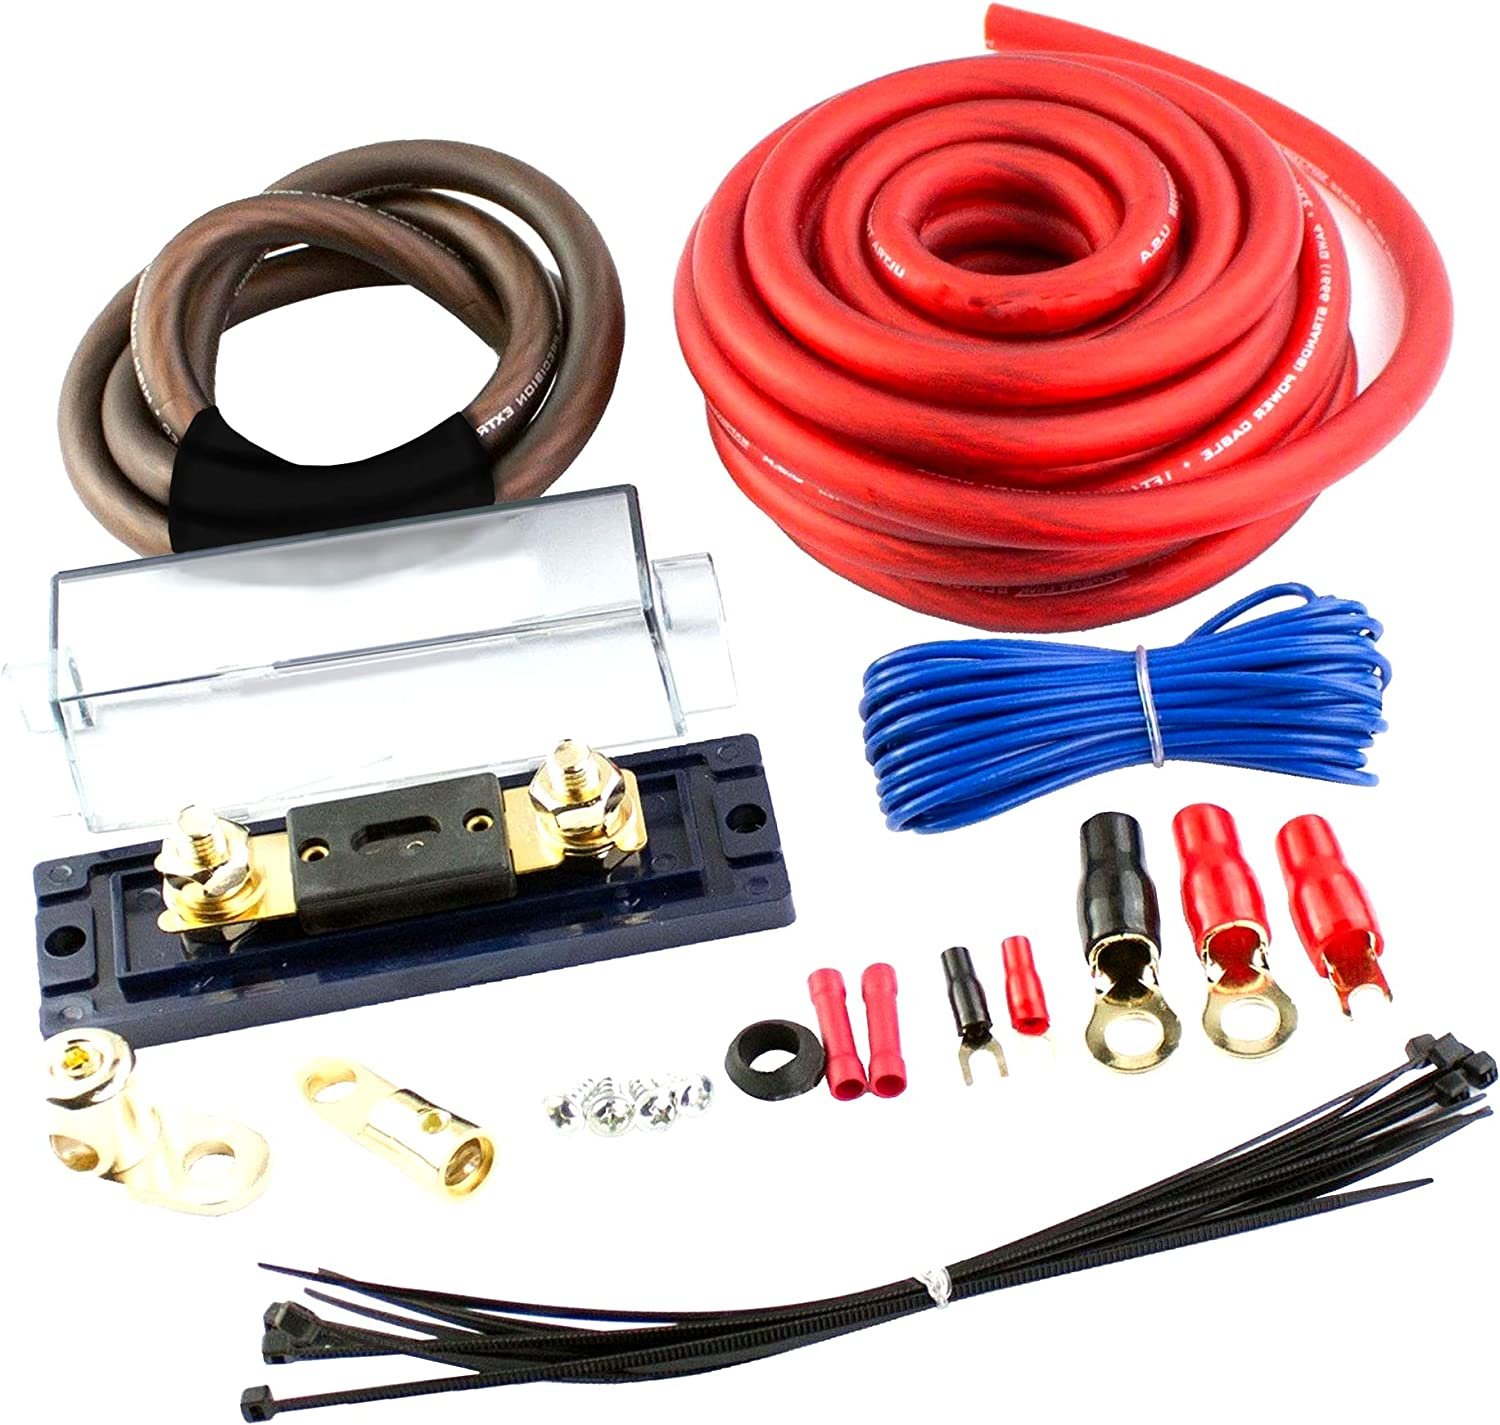 amazon.com: amplifier wiring kit 4 gauge amp car audio gauge ofc copper  2000 watts installation kit type w fuses subwoofers speakers amp dual  auxiliary battery isolator chargers cables power ground cable: car  amazon.com